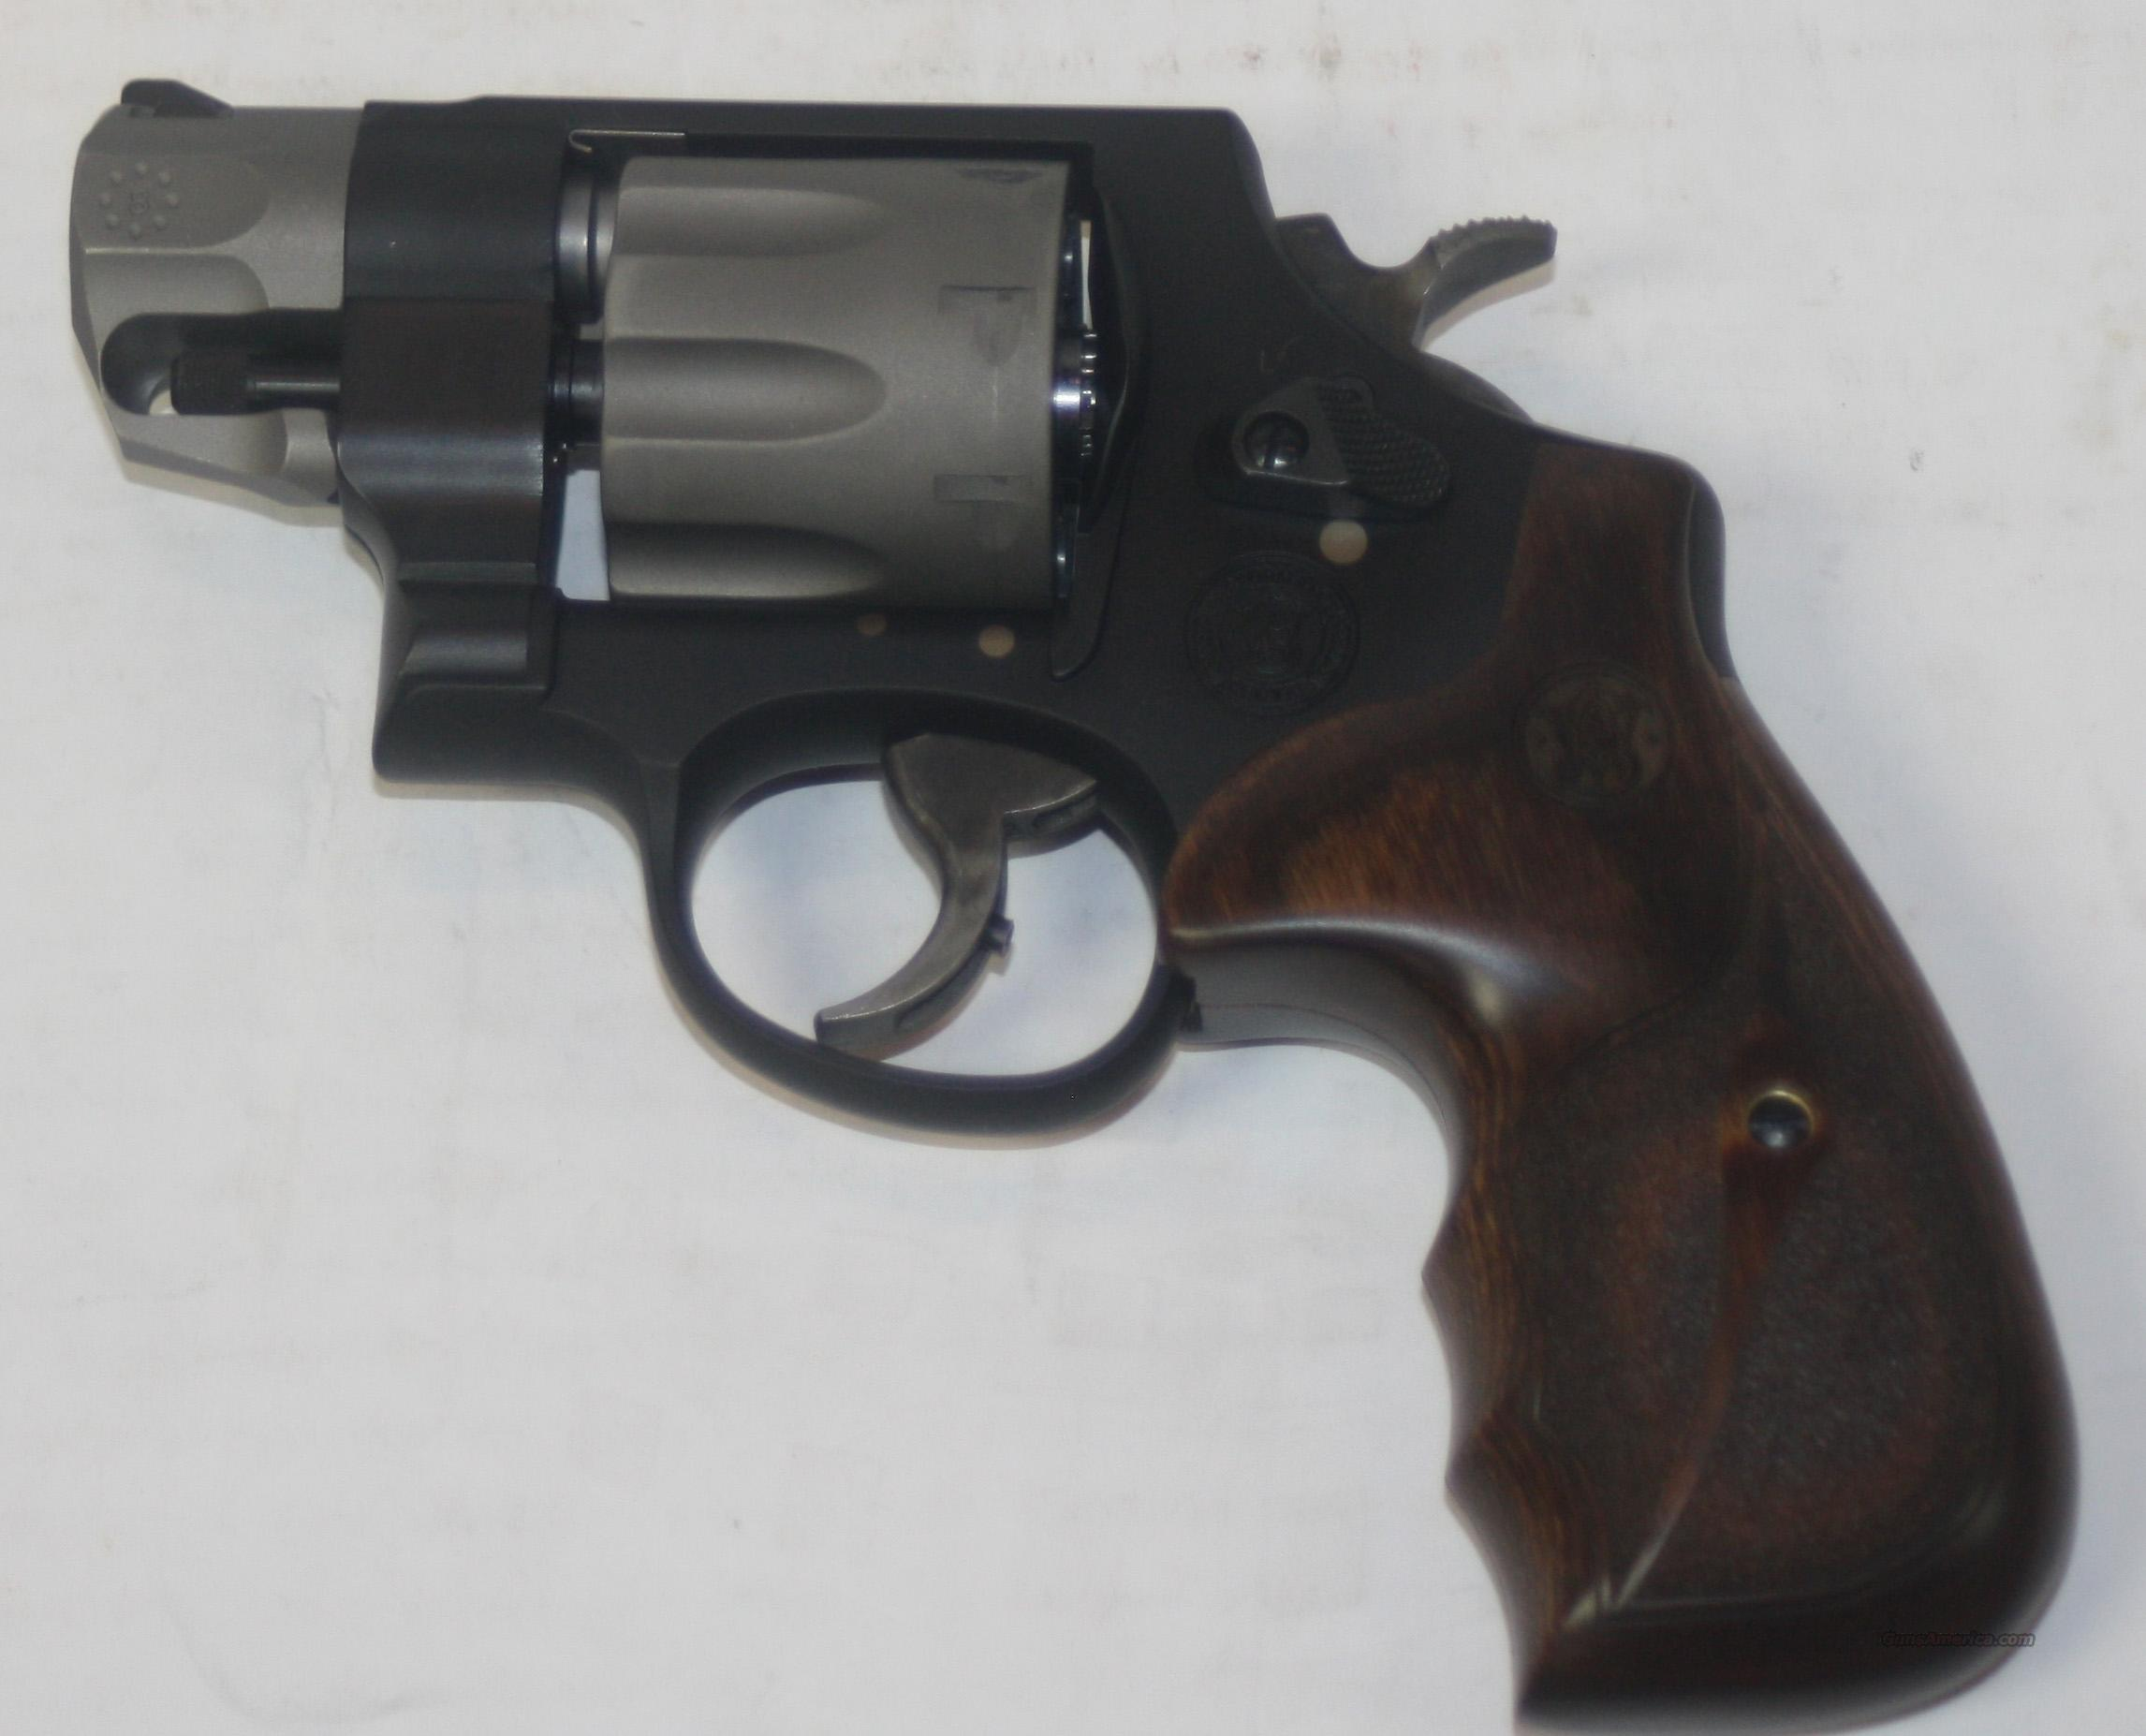 SMITH & WESSON MODEL 327 PERFORMANCE CENTER 357 MAGNUM 8 SHOT 2 INCH NEW IN BOX   Guns > Pistols > Smith & Wesson Revolvers > Performance Center